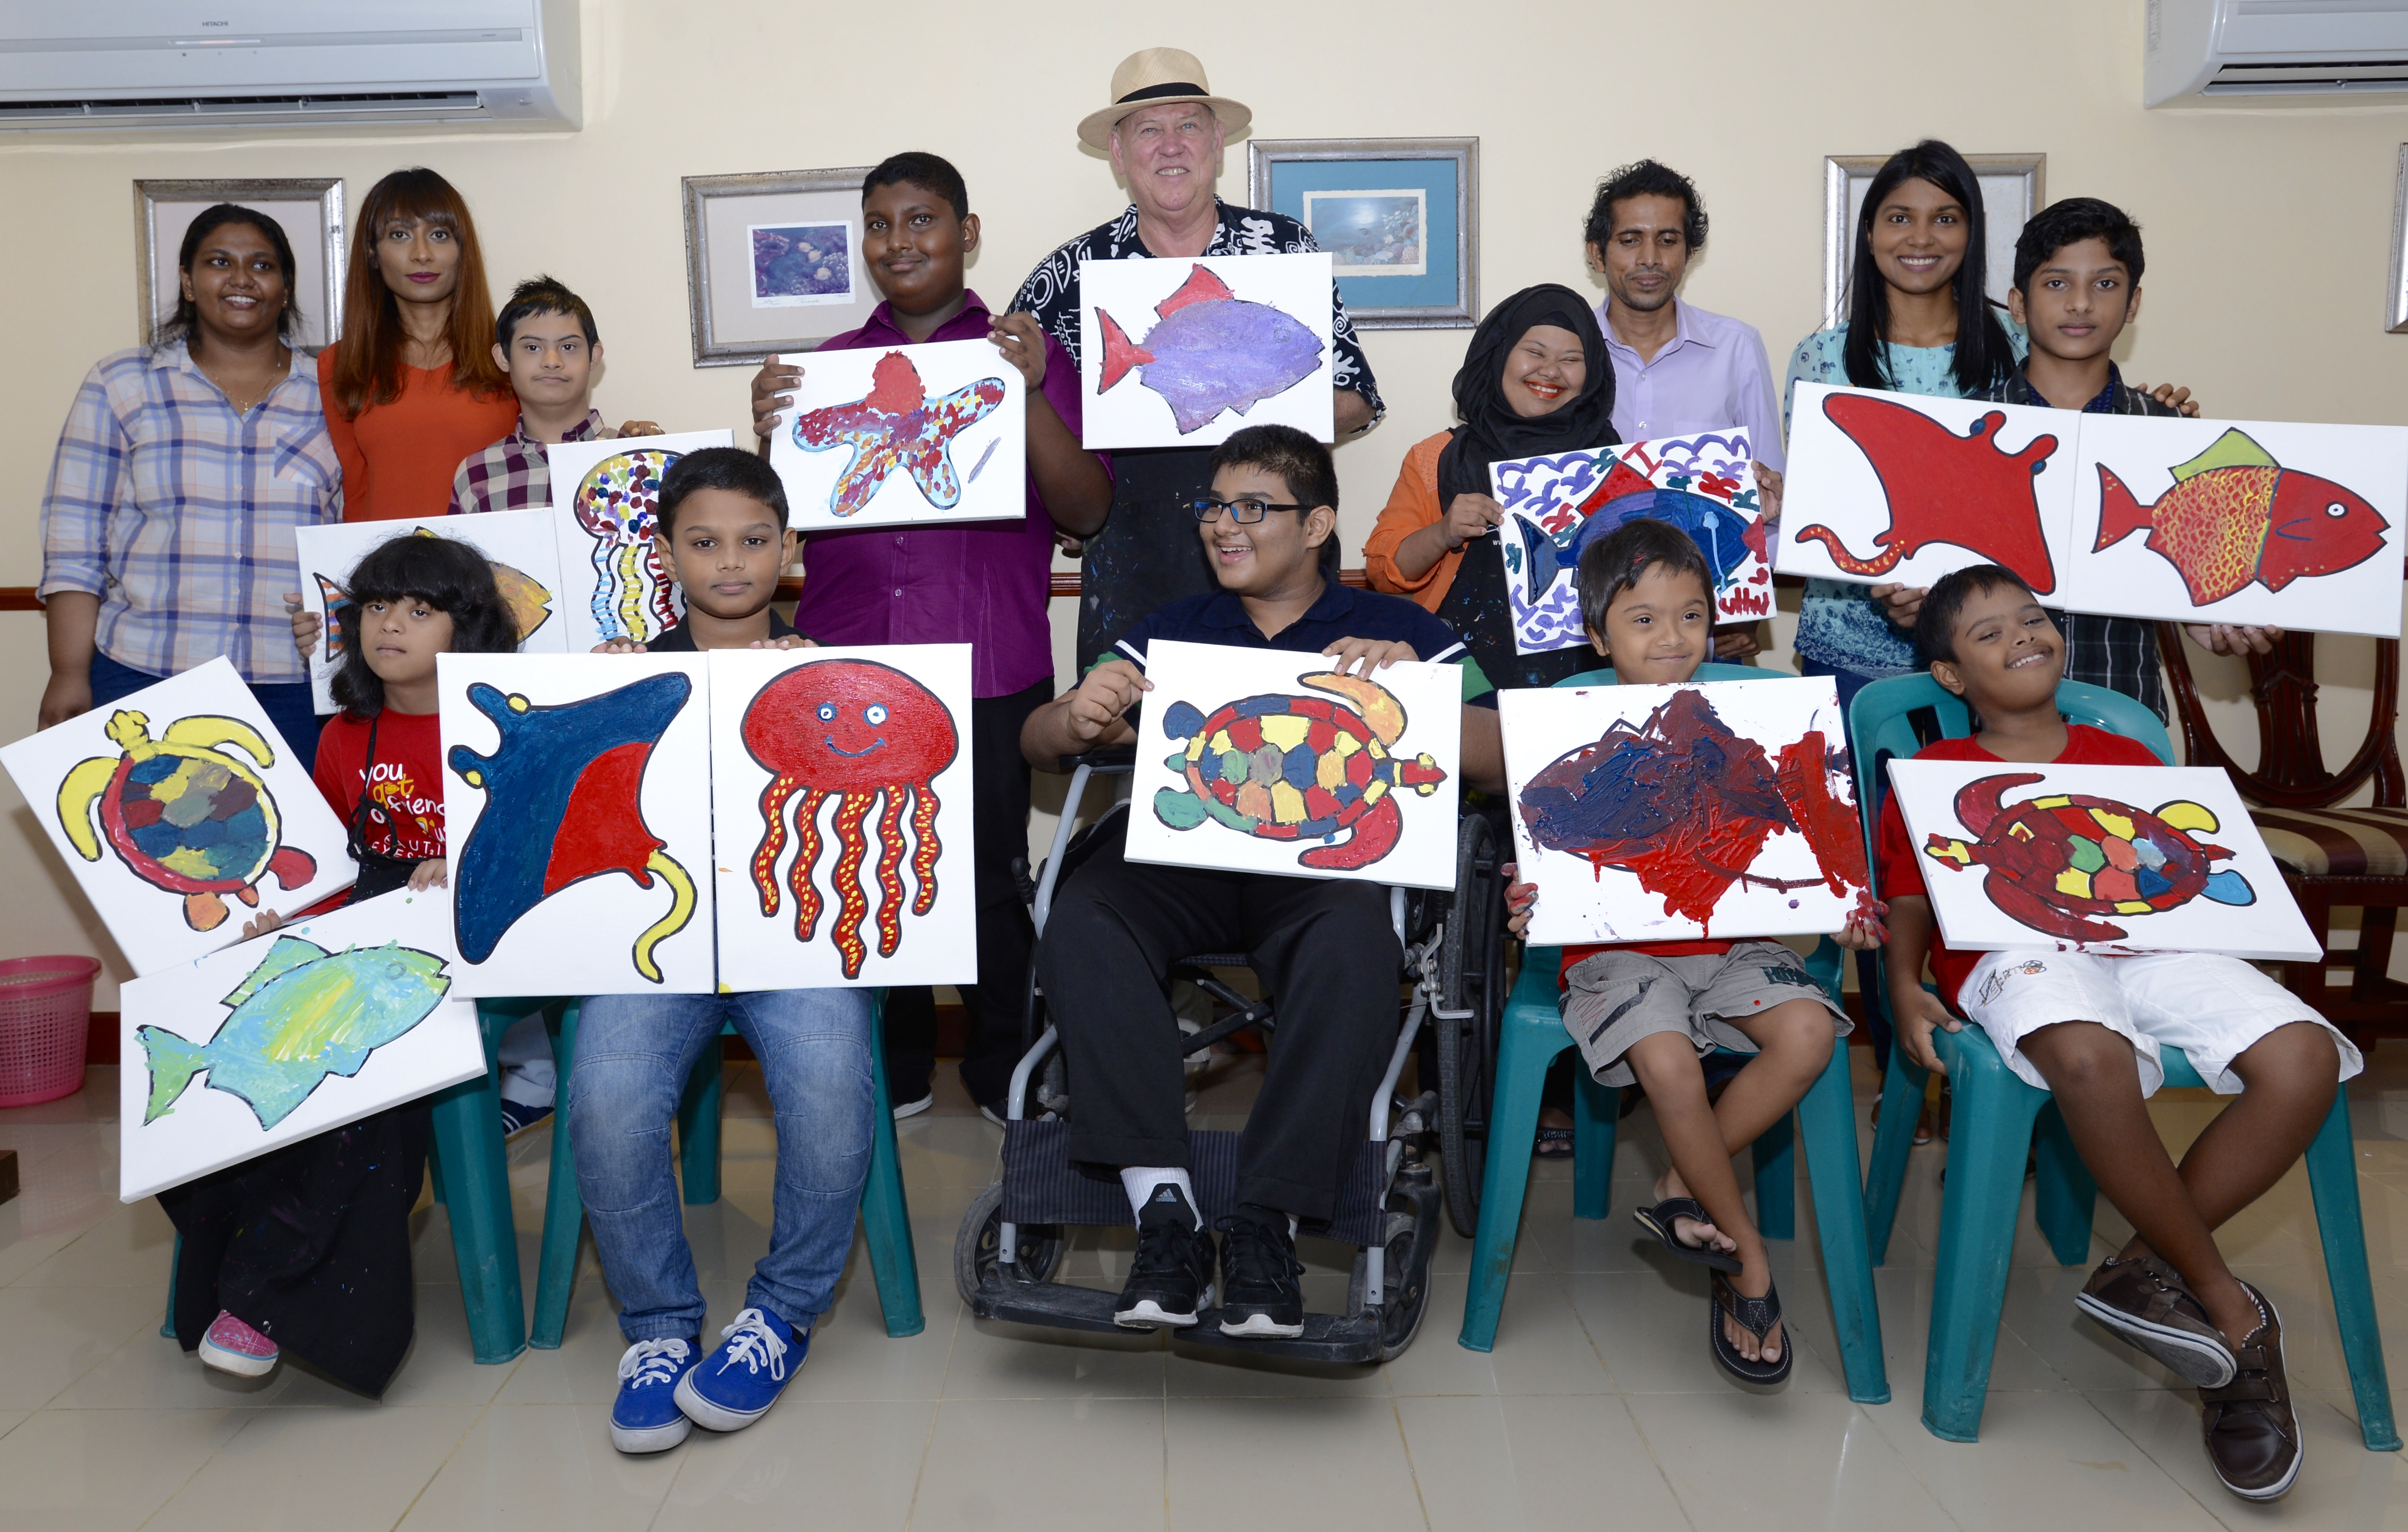 Howto Use Art to Help Children With Disabilities